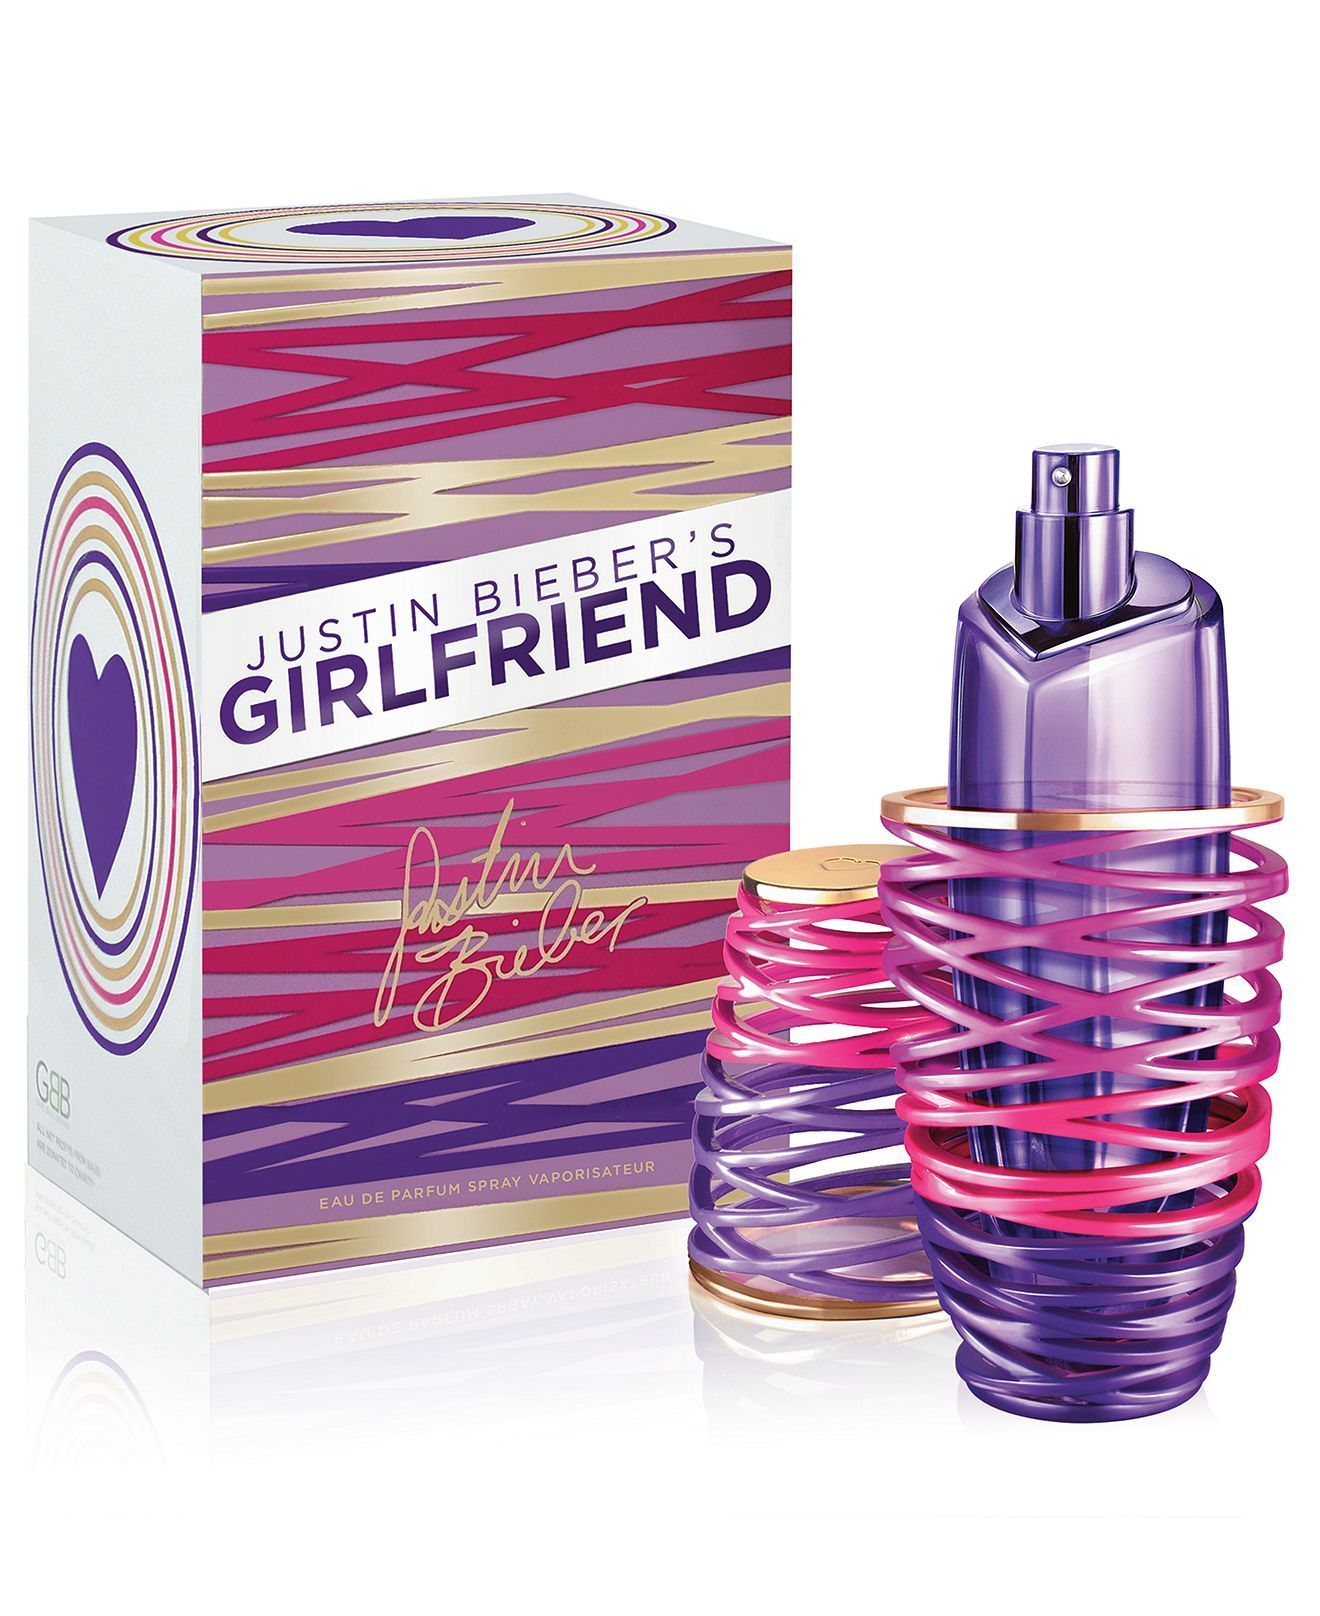 Justin Bieber's Girlfriend Eau de Parfum Spray, 3.4 oz - Justin Bieber - Beauty - Macy's | Perfume, Women perfume, Girlfriend justin bieber